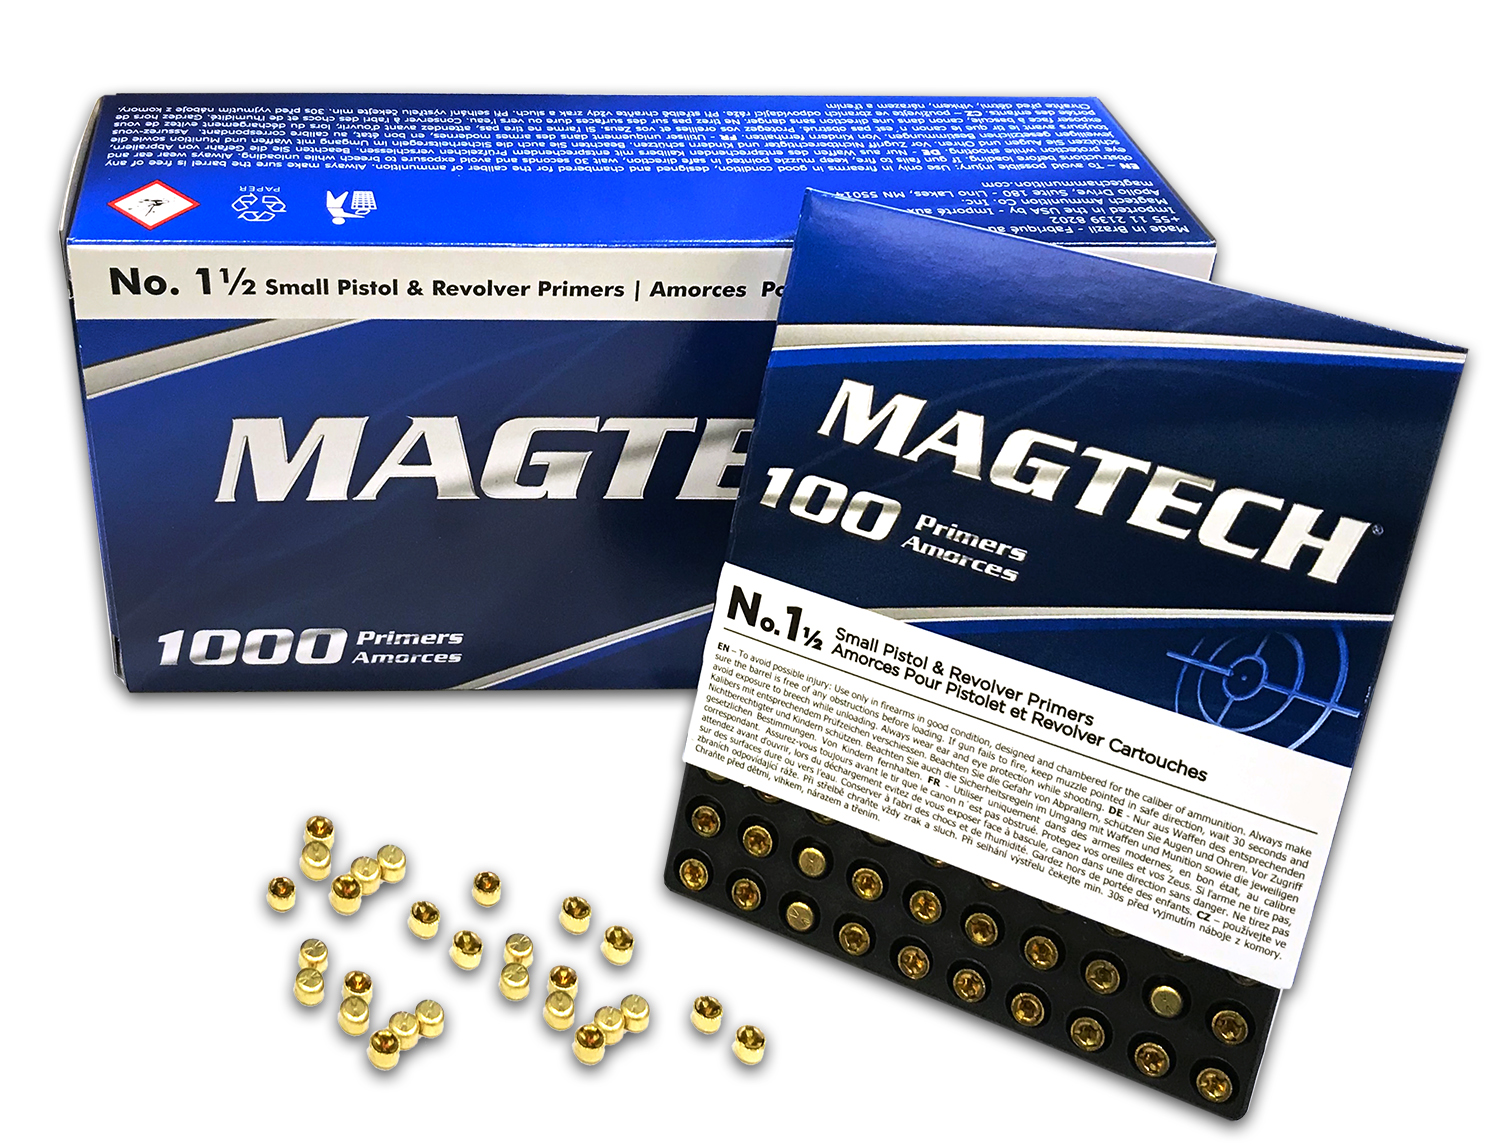 Magtech Primer 1 1/2 Small Pis